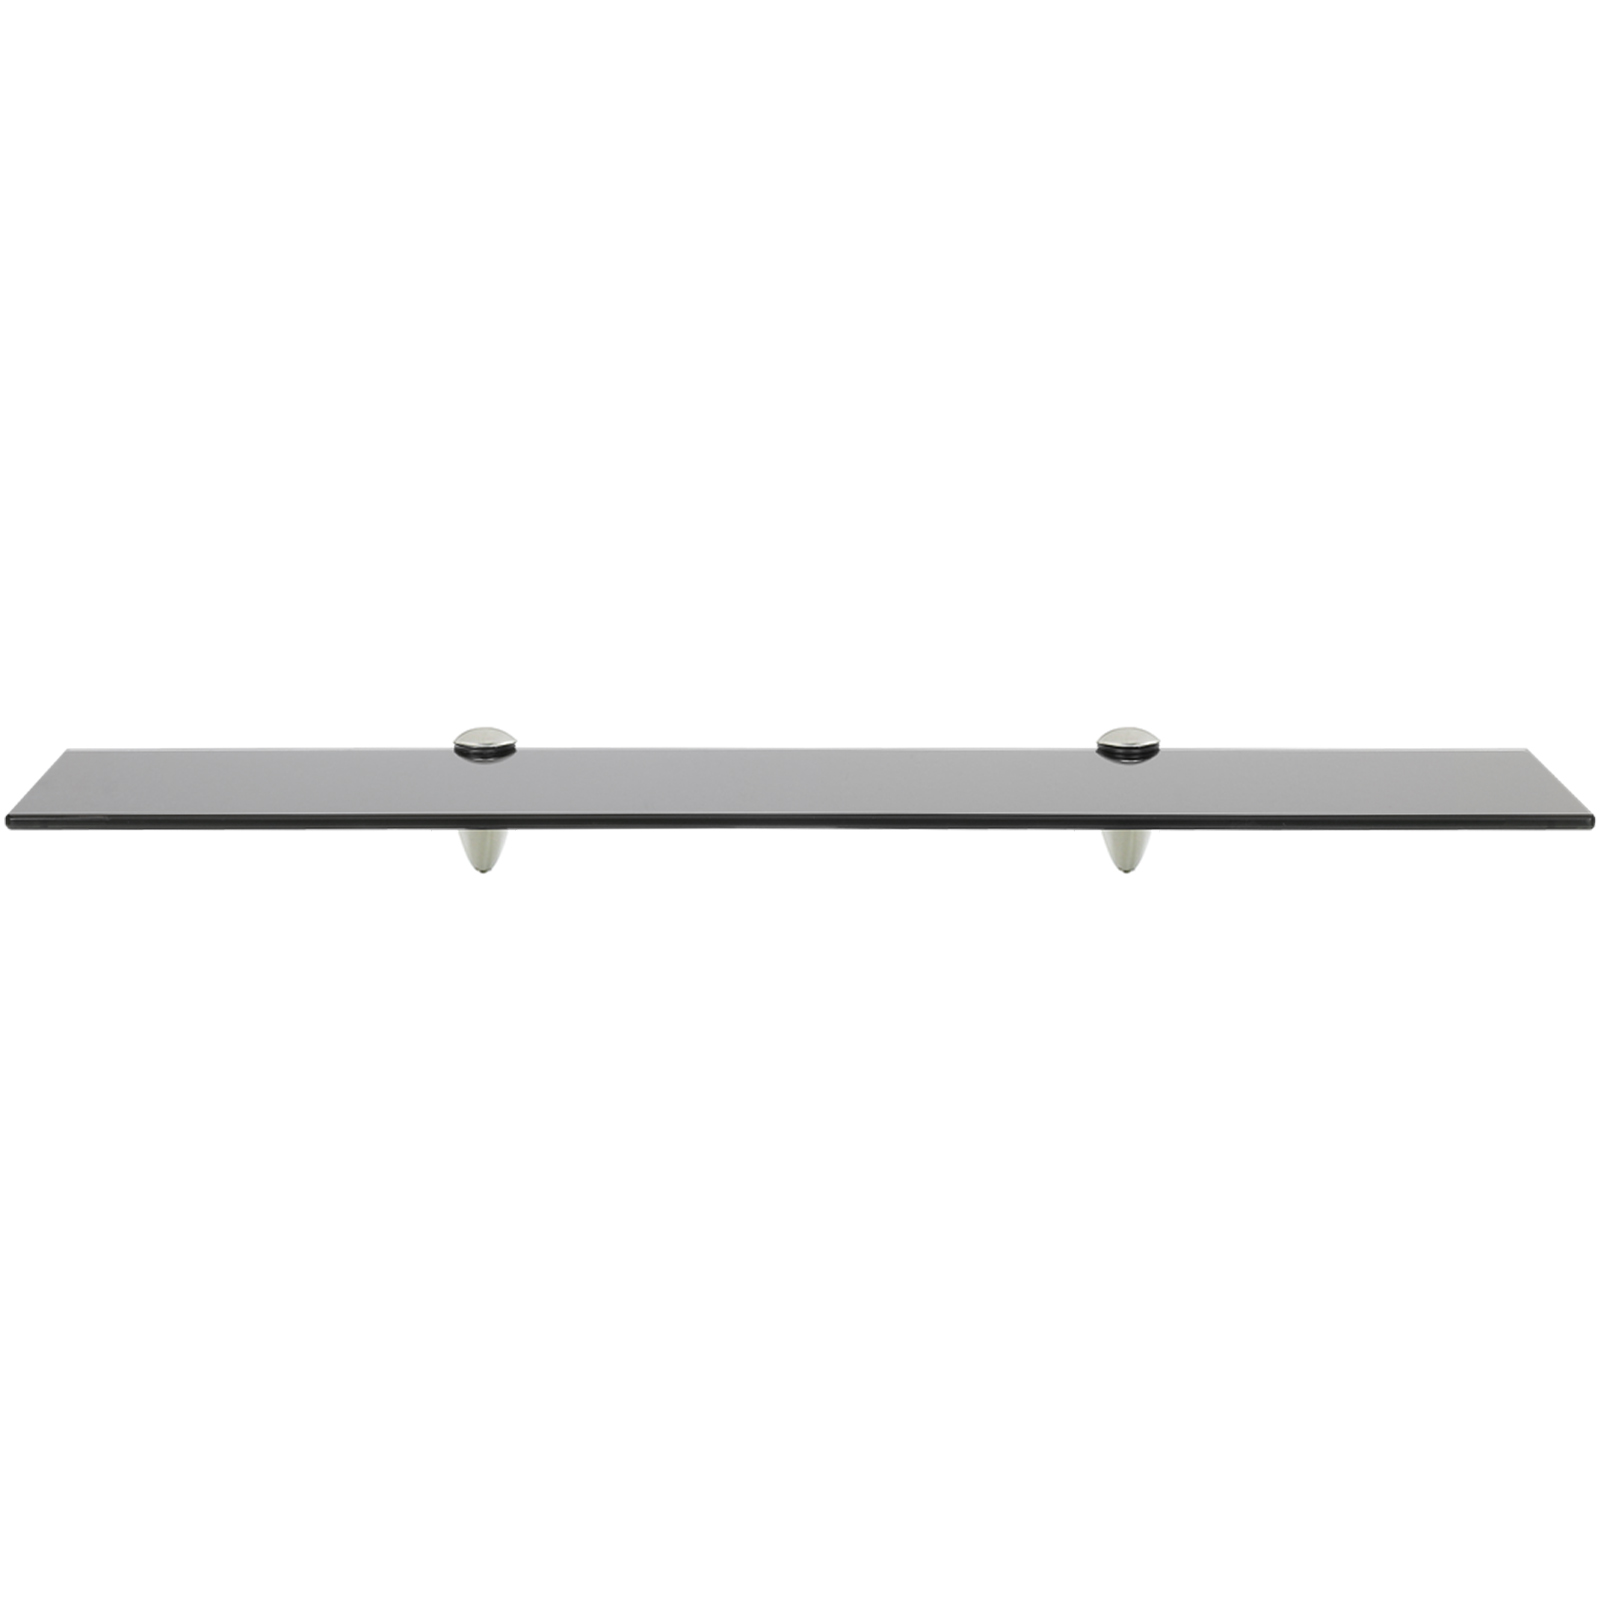 HARTLEYS-BLACK-GLASS-FLOATING-WALL-MOUNTED-SHELF-CHROME-FIXINGS-BATHROOM-DISPLAY thumbnail 18